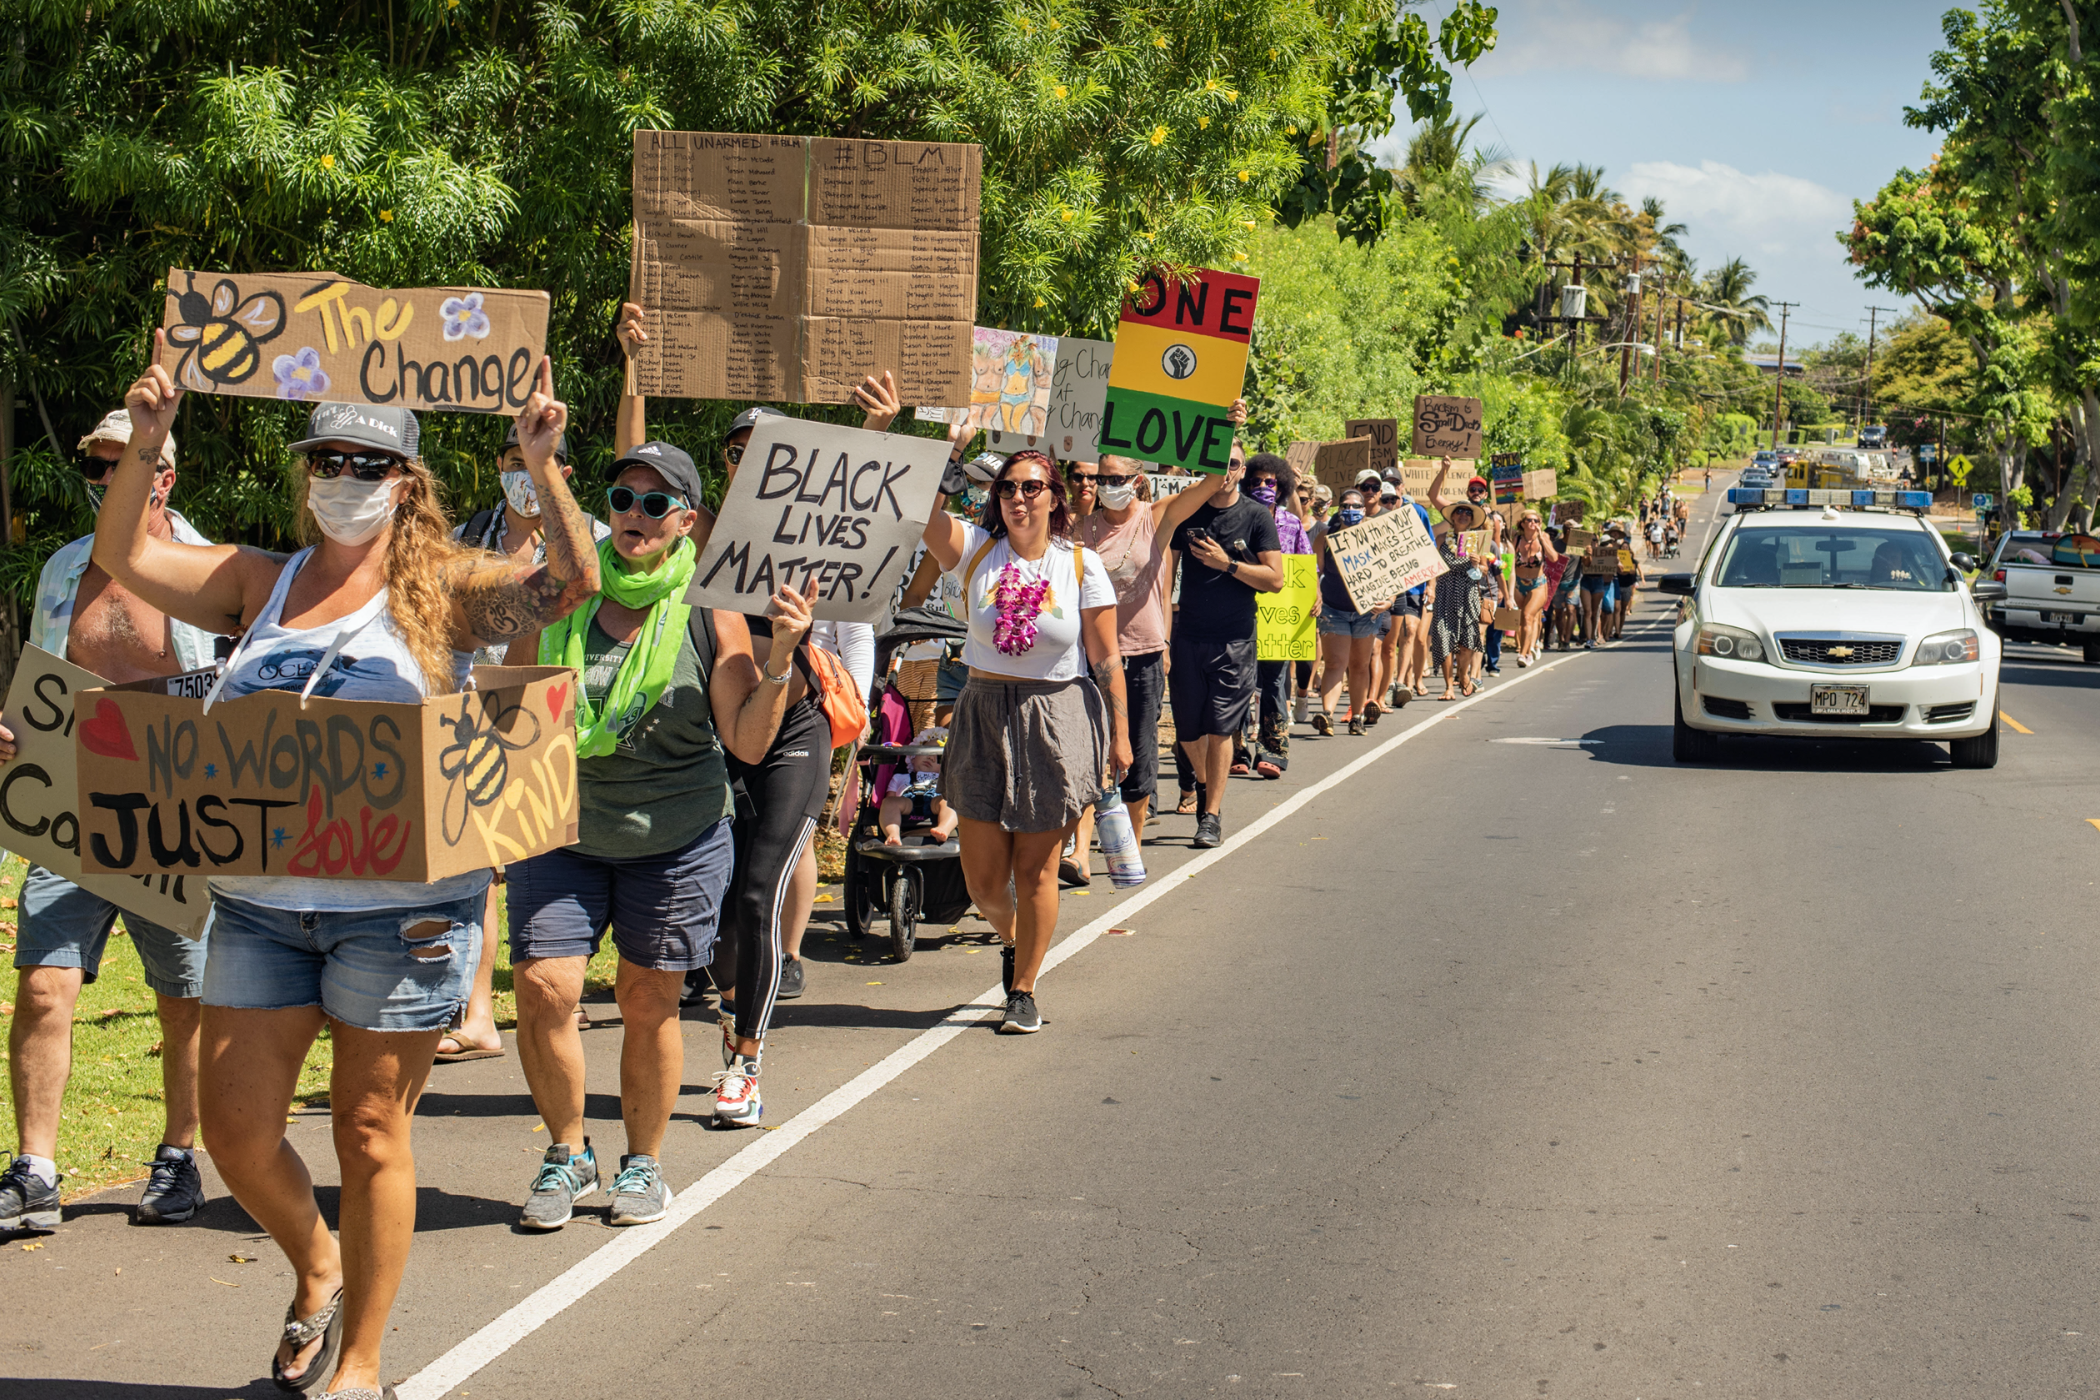 Images: March for Justice in South Maui